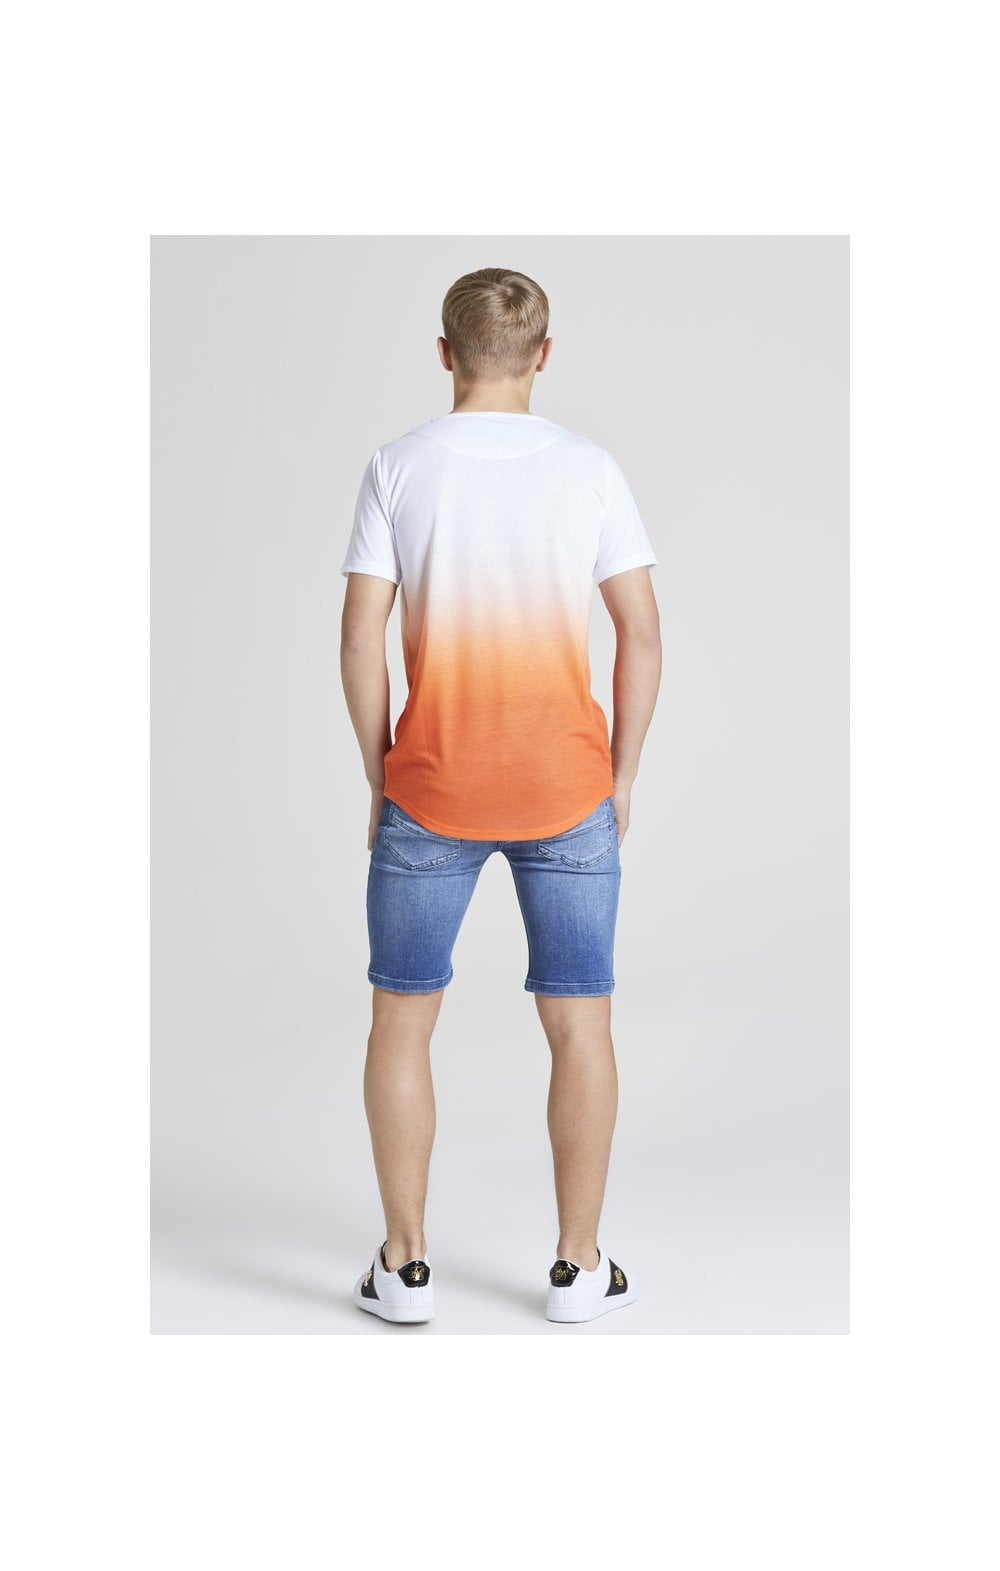 Load image into Gallery viewer, Illusive London Core Fade Tee – White & Orange (4)